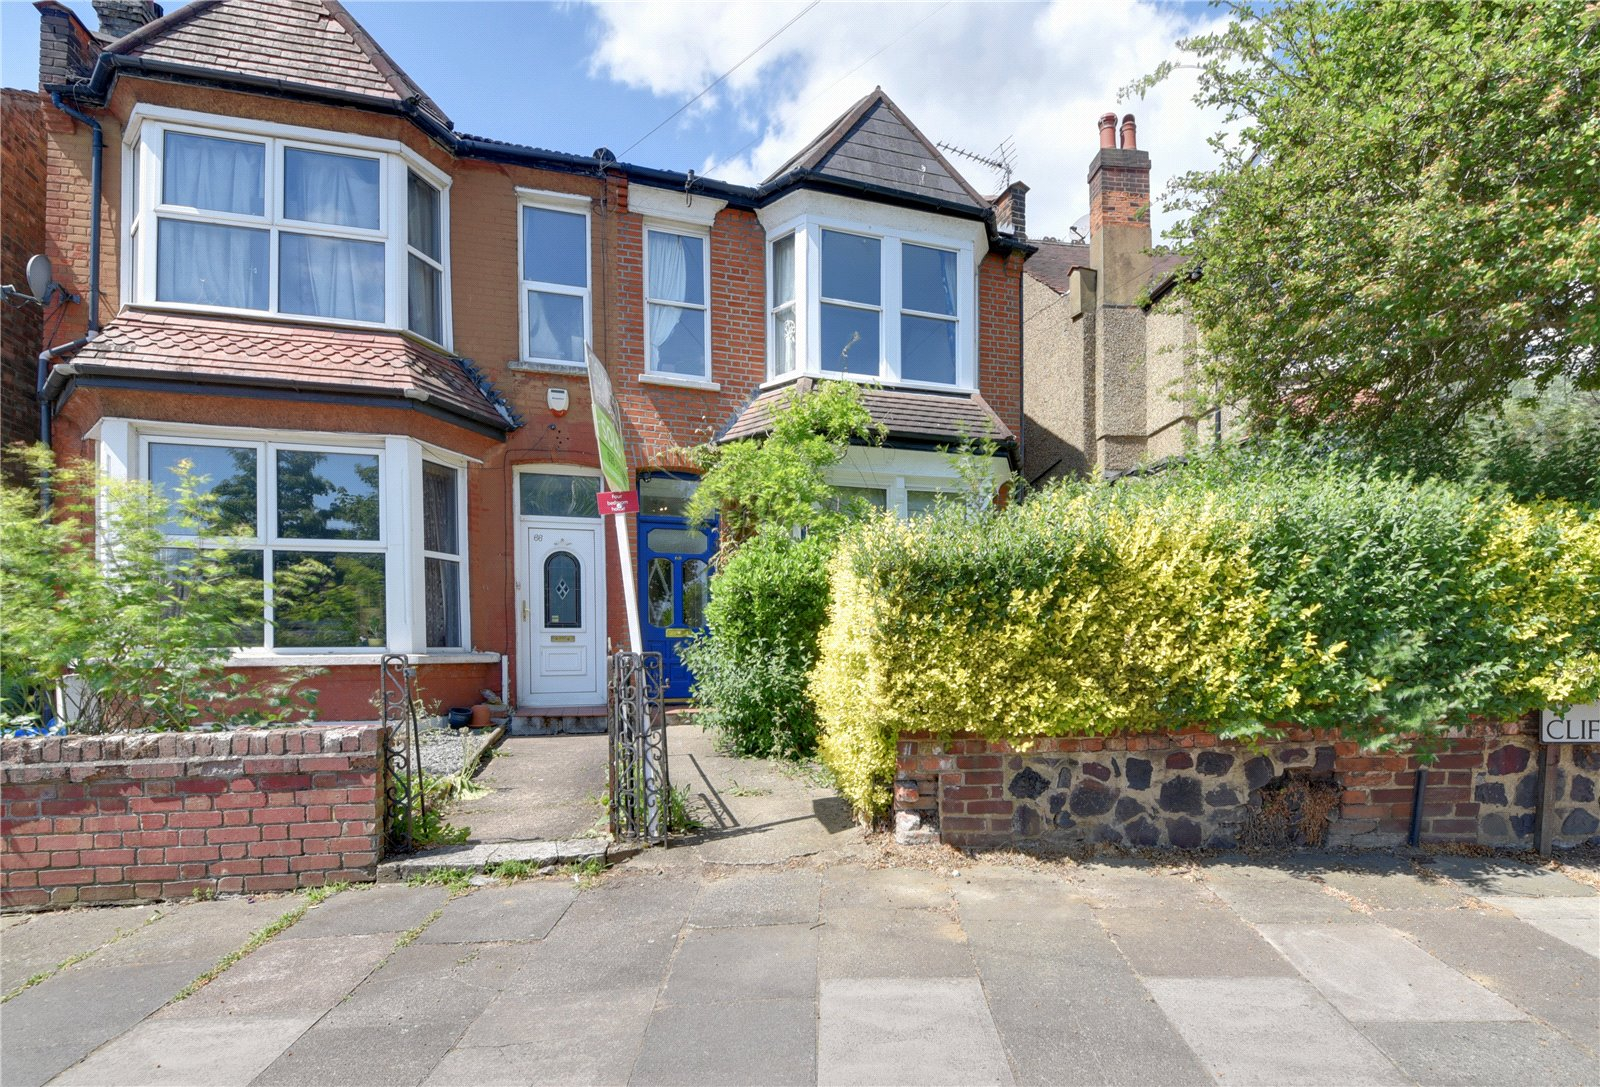 4 bed house for sale in Finchley, N3 2AR, N3 2